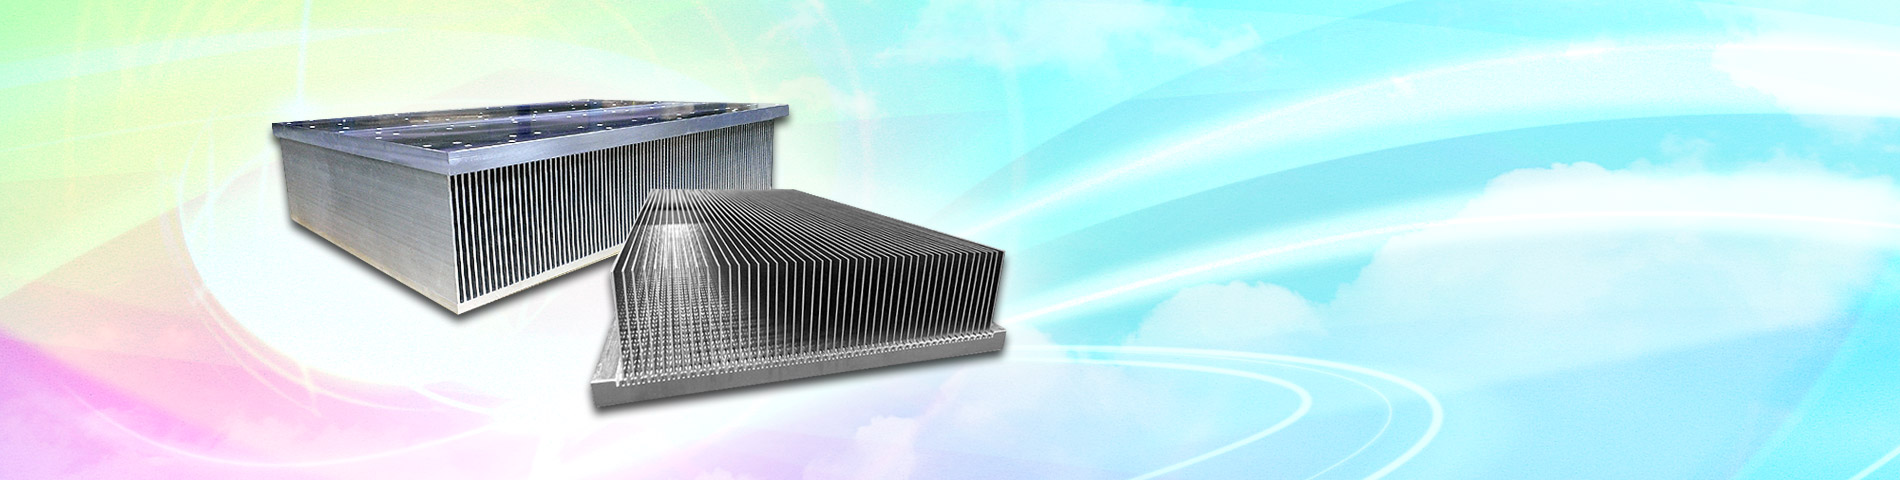 SHUNTEH We Satisfy Your Need A professional manufacturer of HEAT SINK